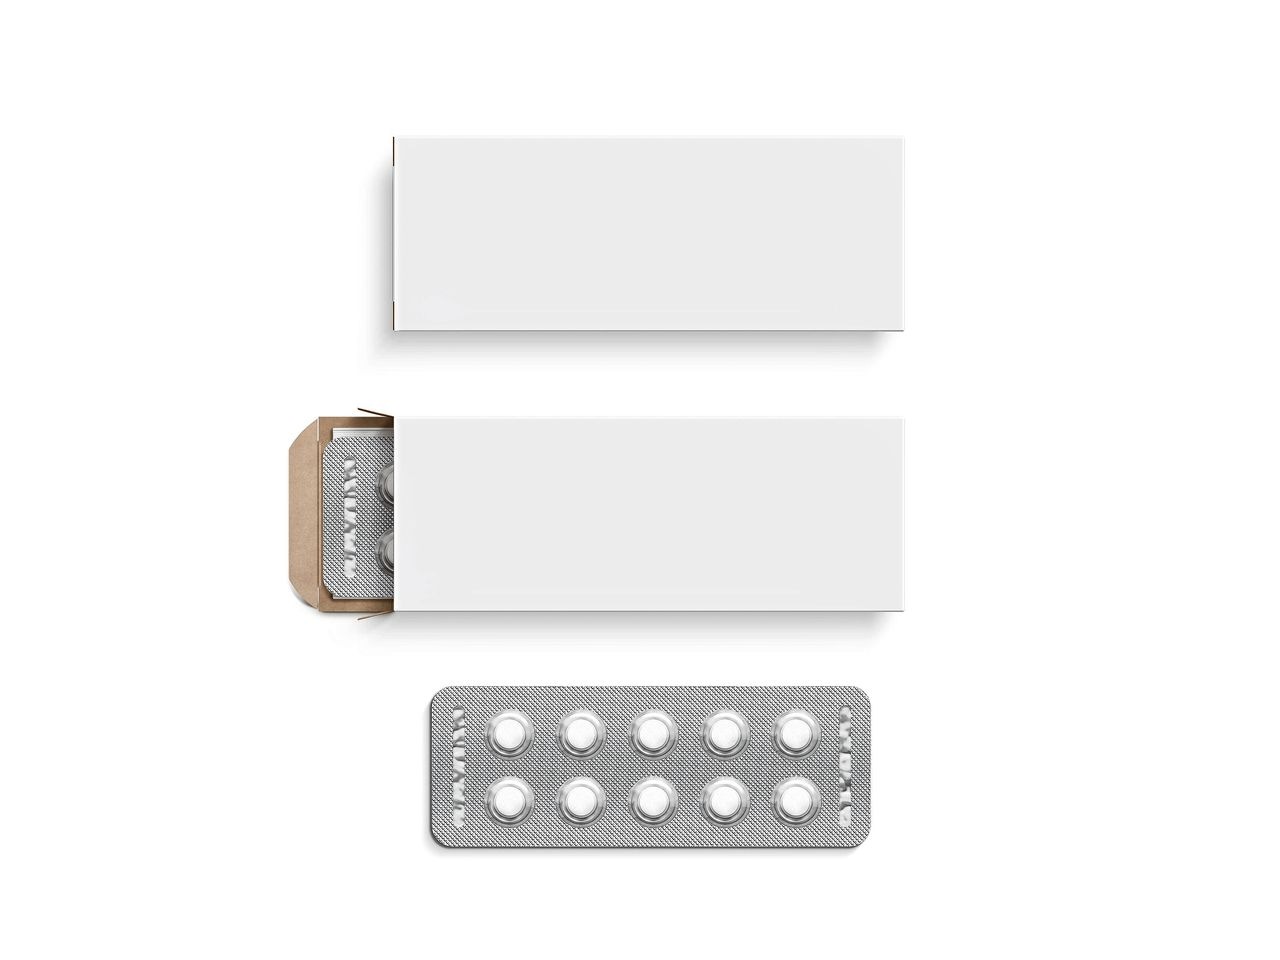 Blank white pill box design mockup set, isolated, 3d illustration. Clear blister pillbox template mock up. Open and close tablets cardboard container. Blister pill boxing with drug capsule branding